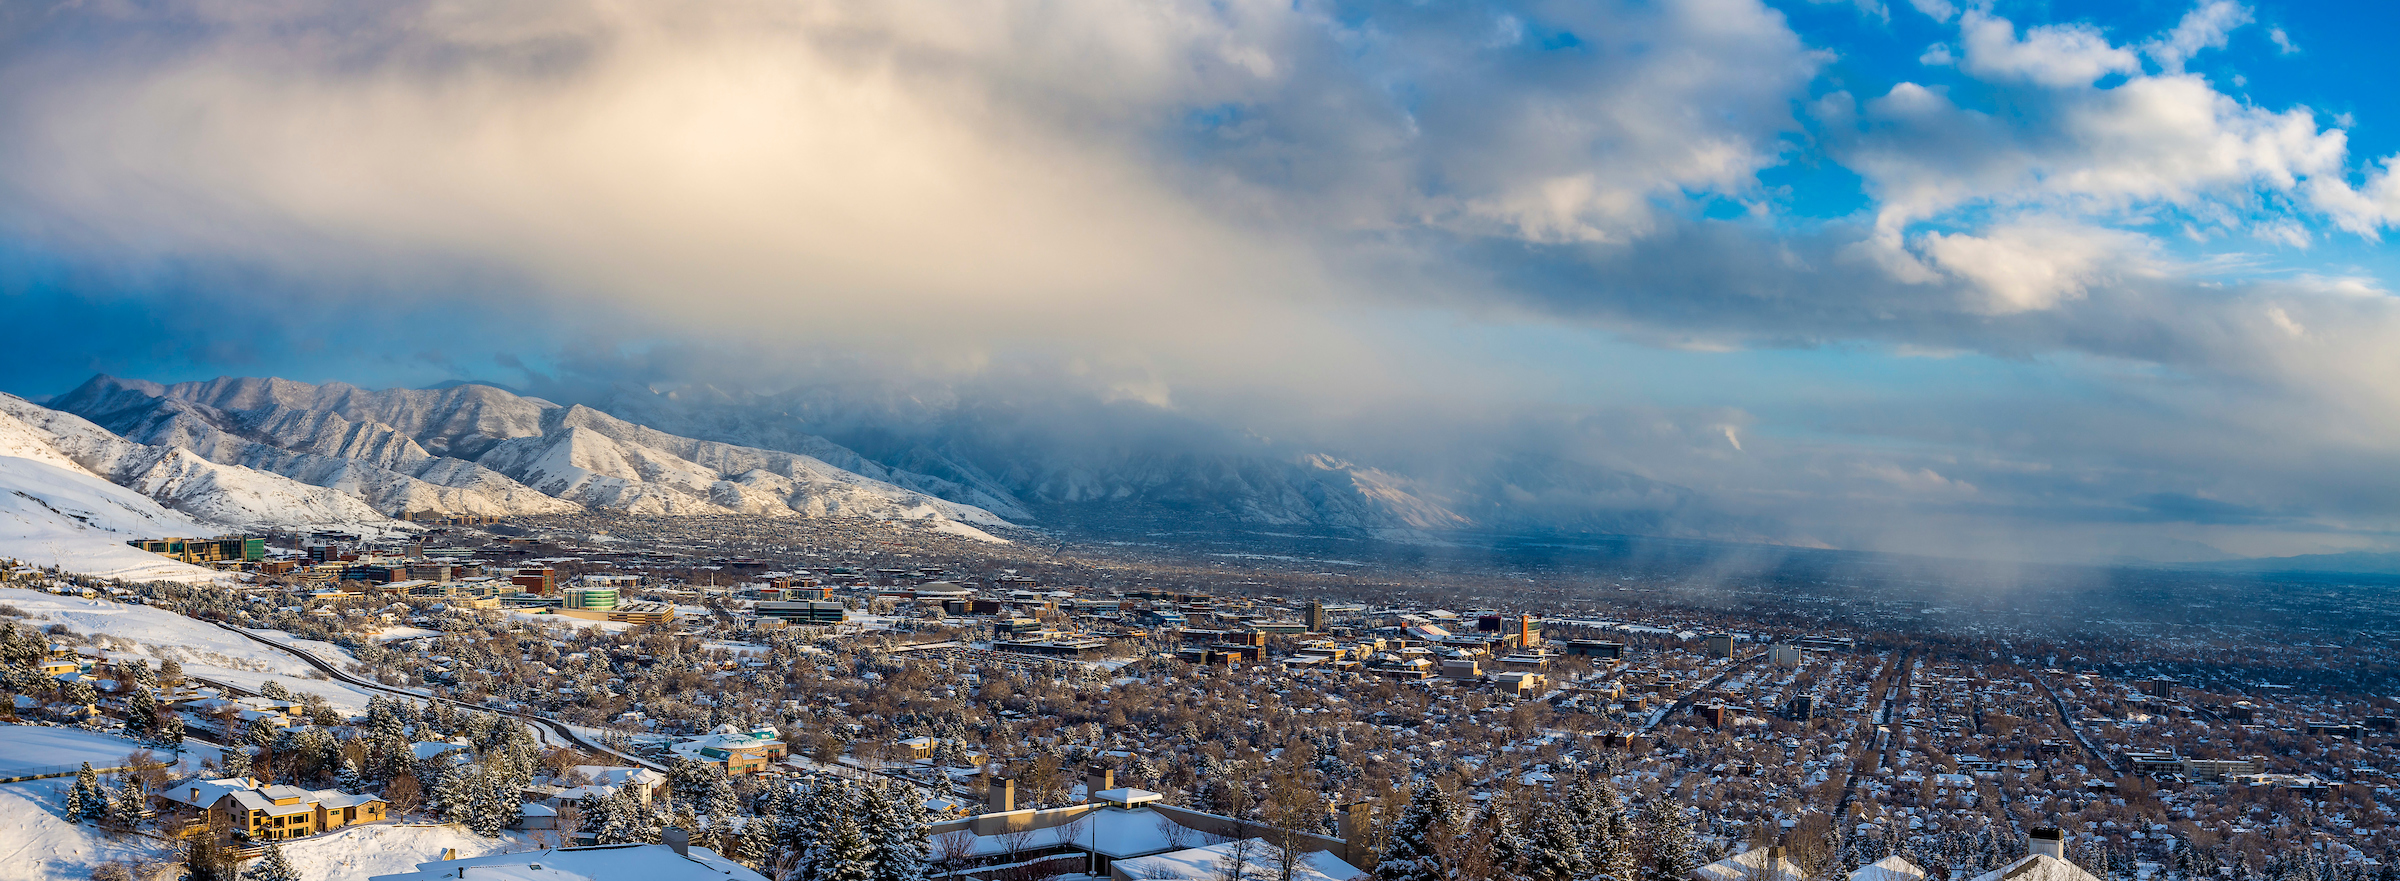 Aerial view of University of Utah campus and mountains in the winter.